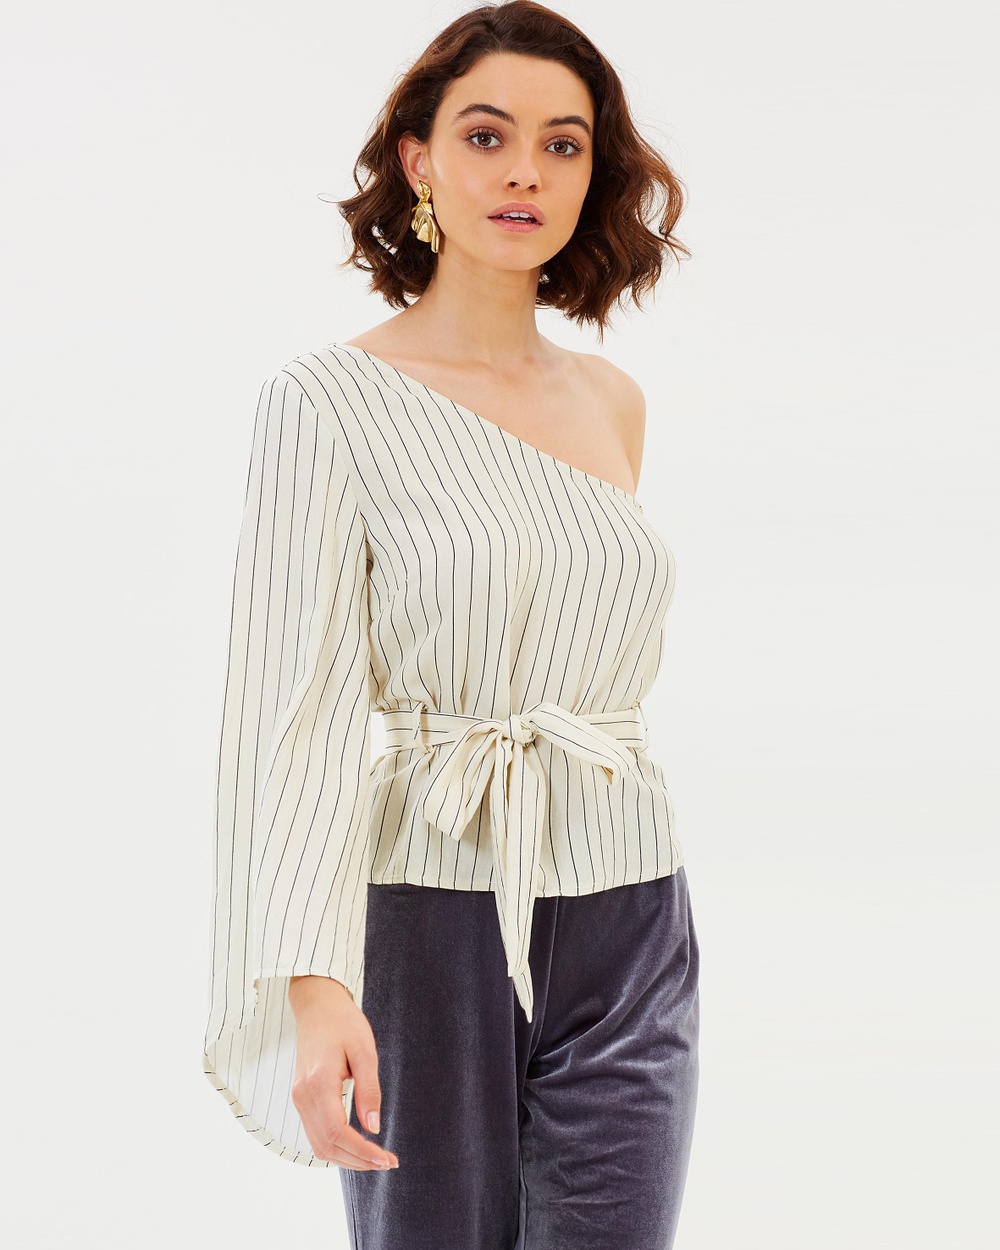 Dazie Vertical Vision One Sleeve Top Tops Off White Stripe Vertical Vision One Sleeve Top